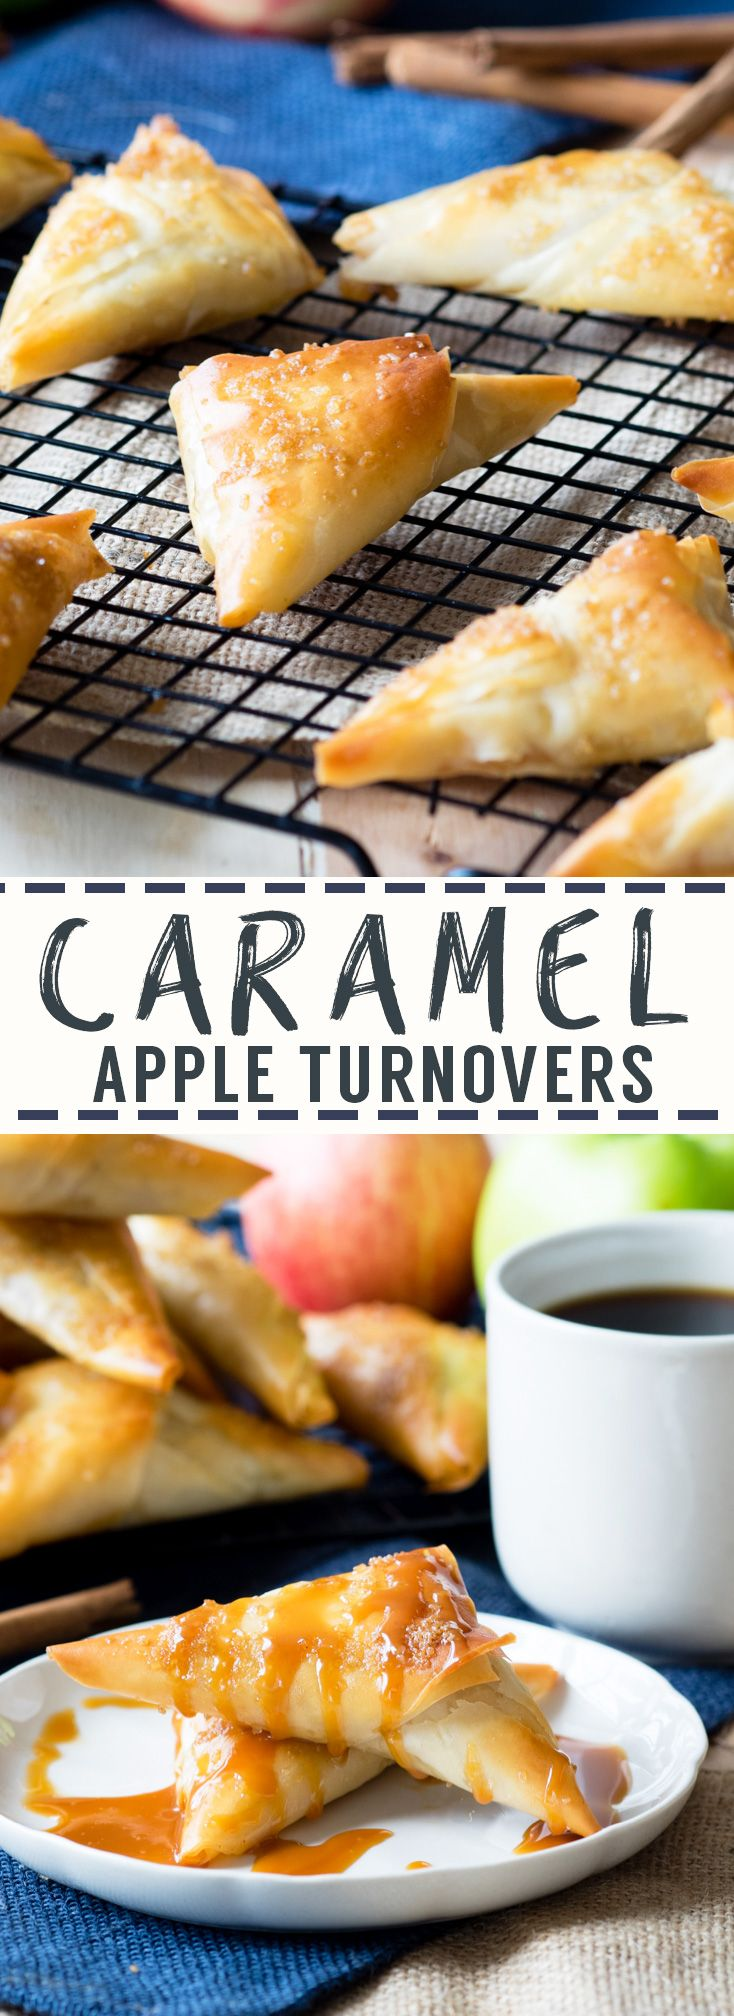 Caramel Apple Turnovers with Filo Pastry | The Worktop (Apple Recipes Muffins)